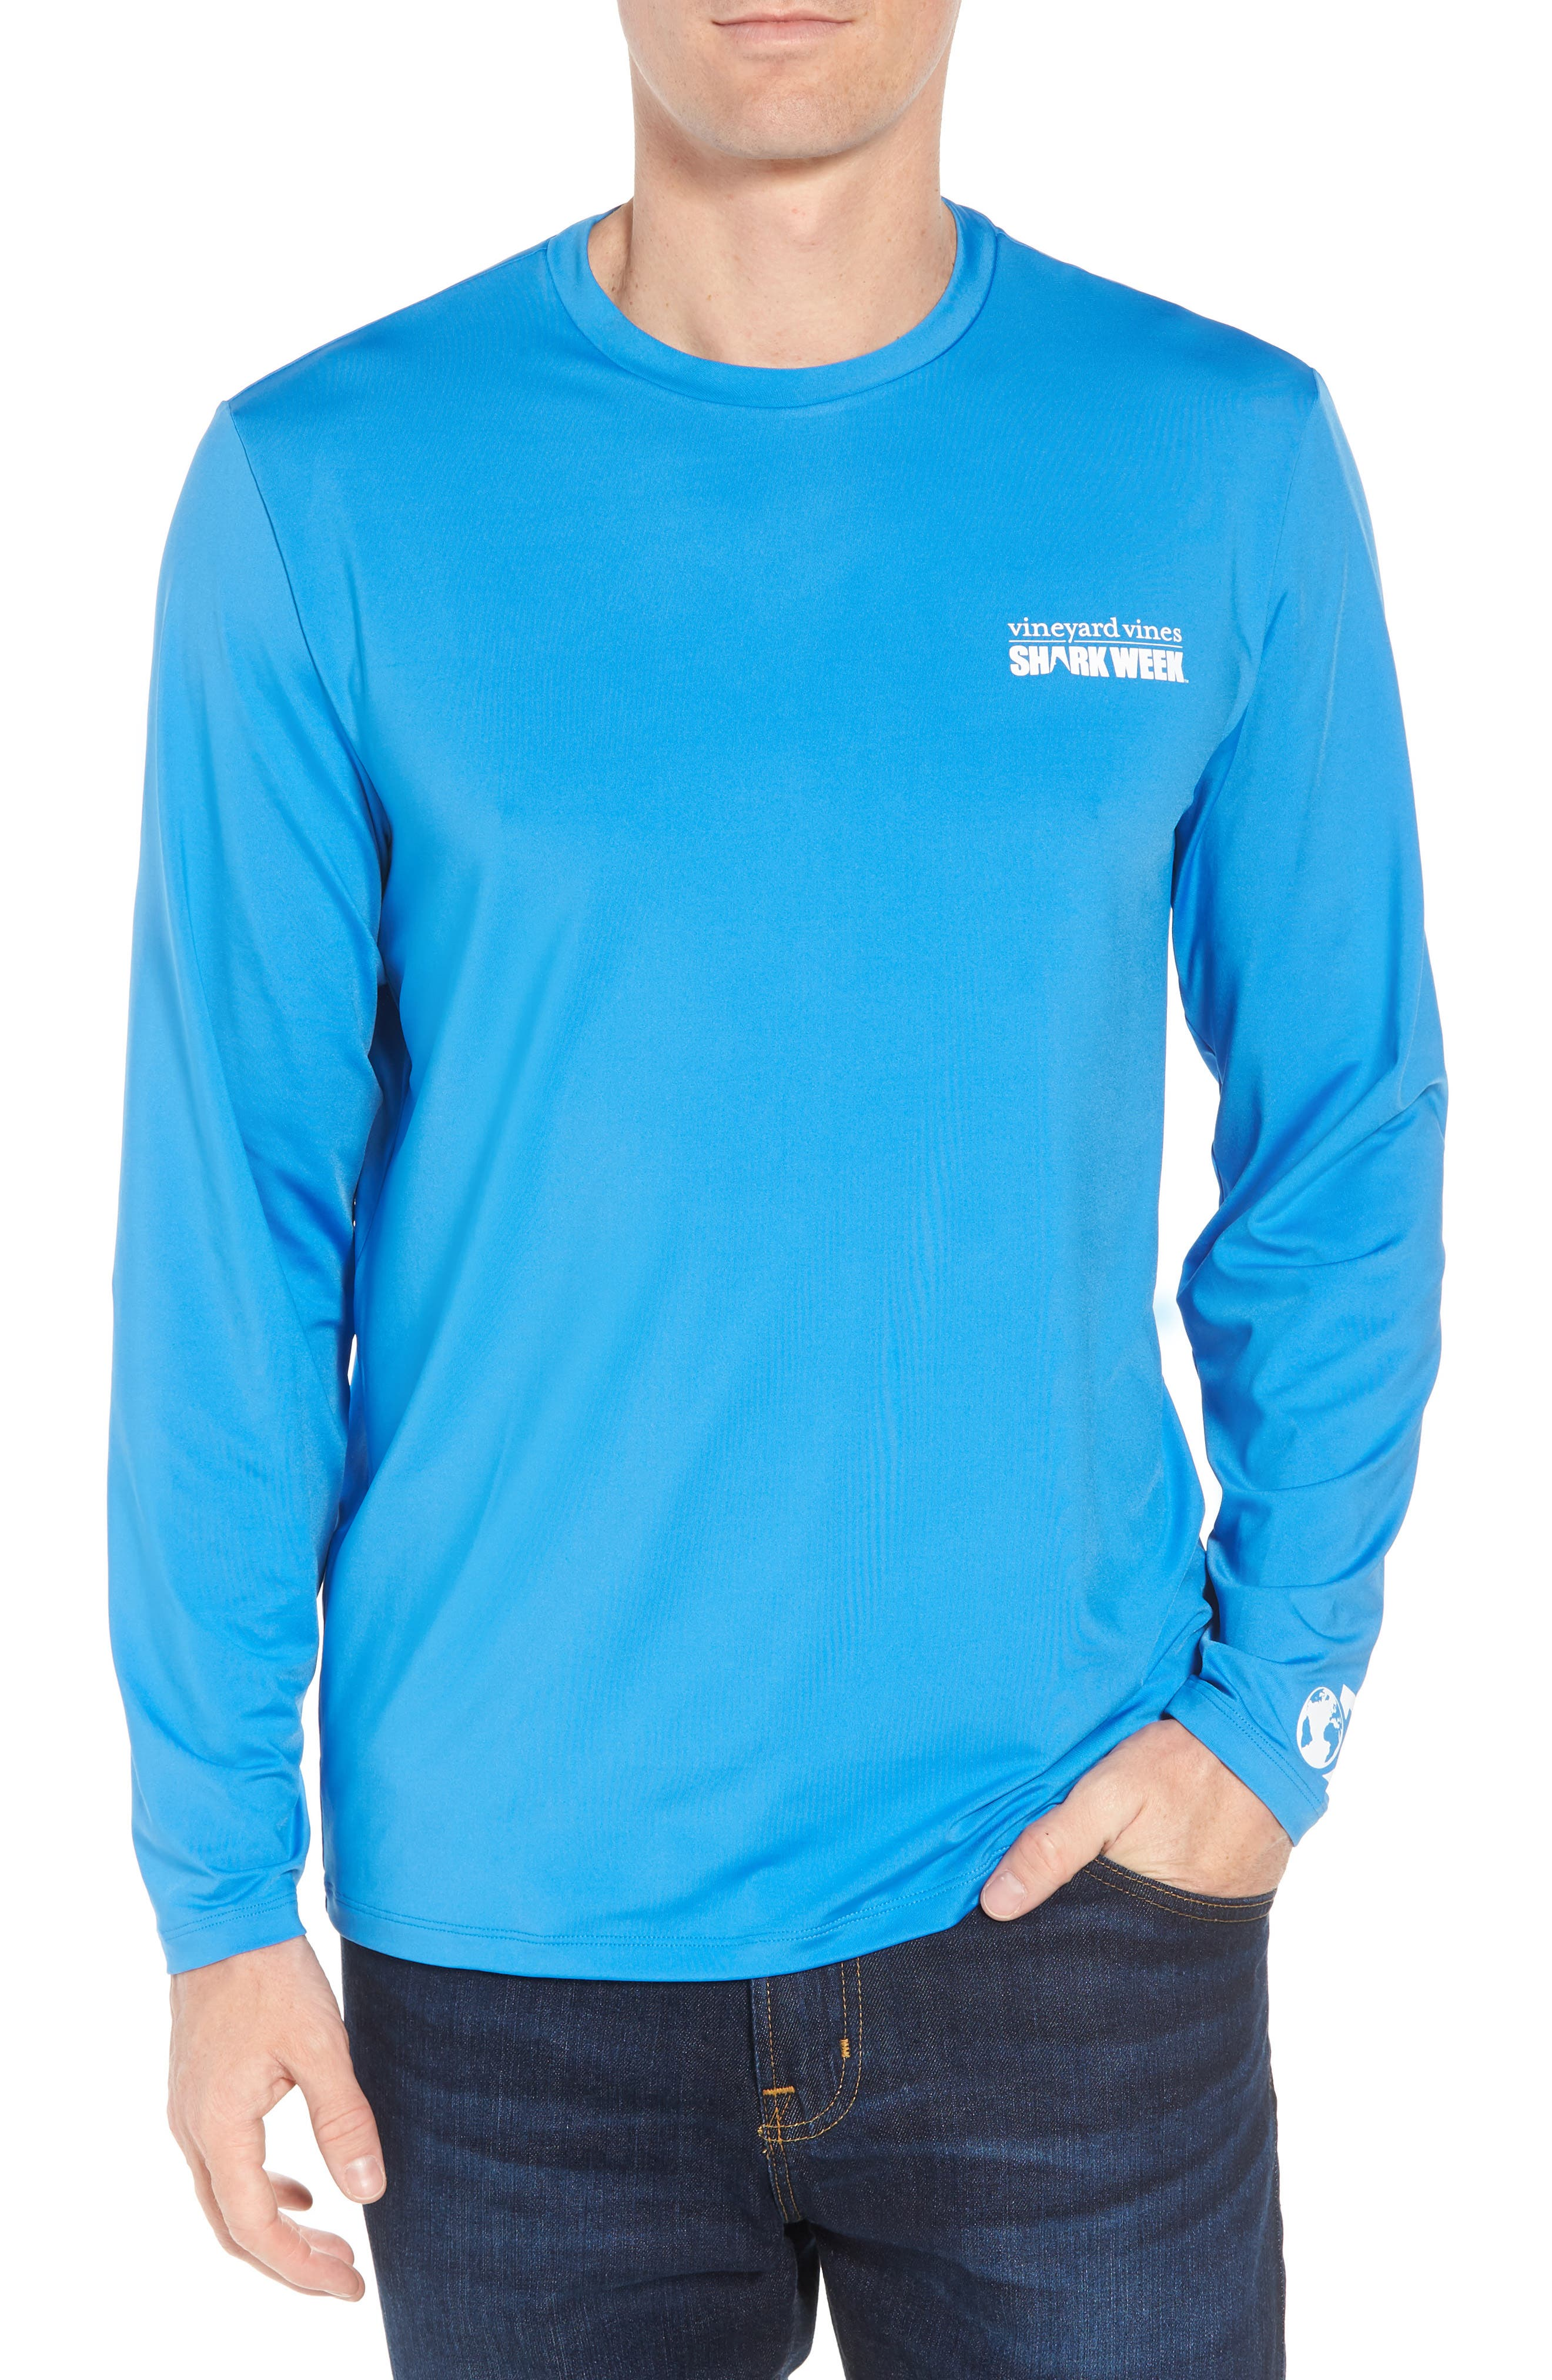 x Shark Week<sup>™</sup> Logo Long Sleeve T-Shirt,                         Main,                         color,